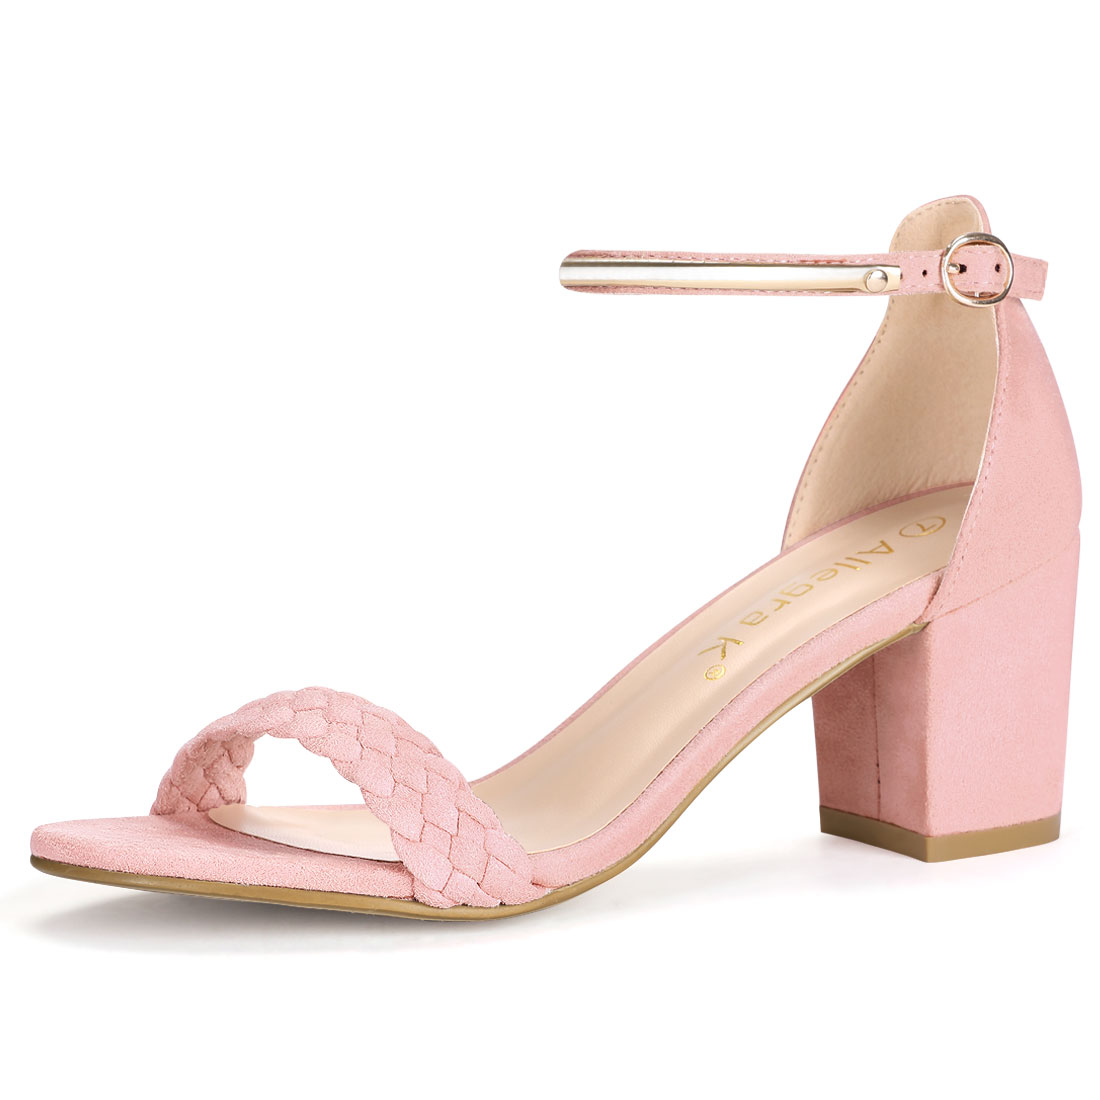 Women Open Toe Mid Heel Braided Ankle Strap Sandals Pink US 6